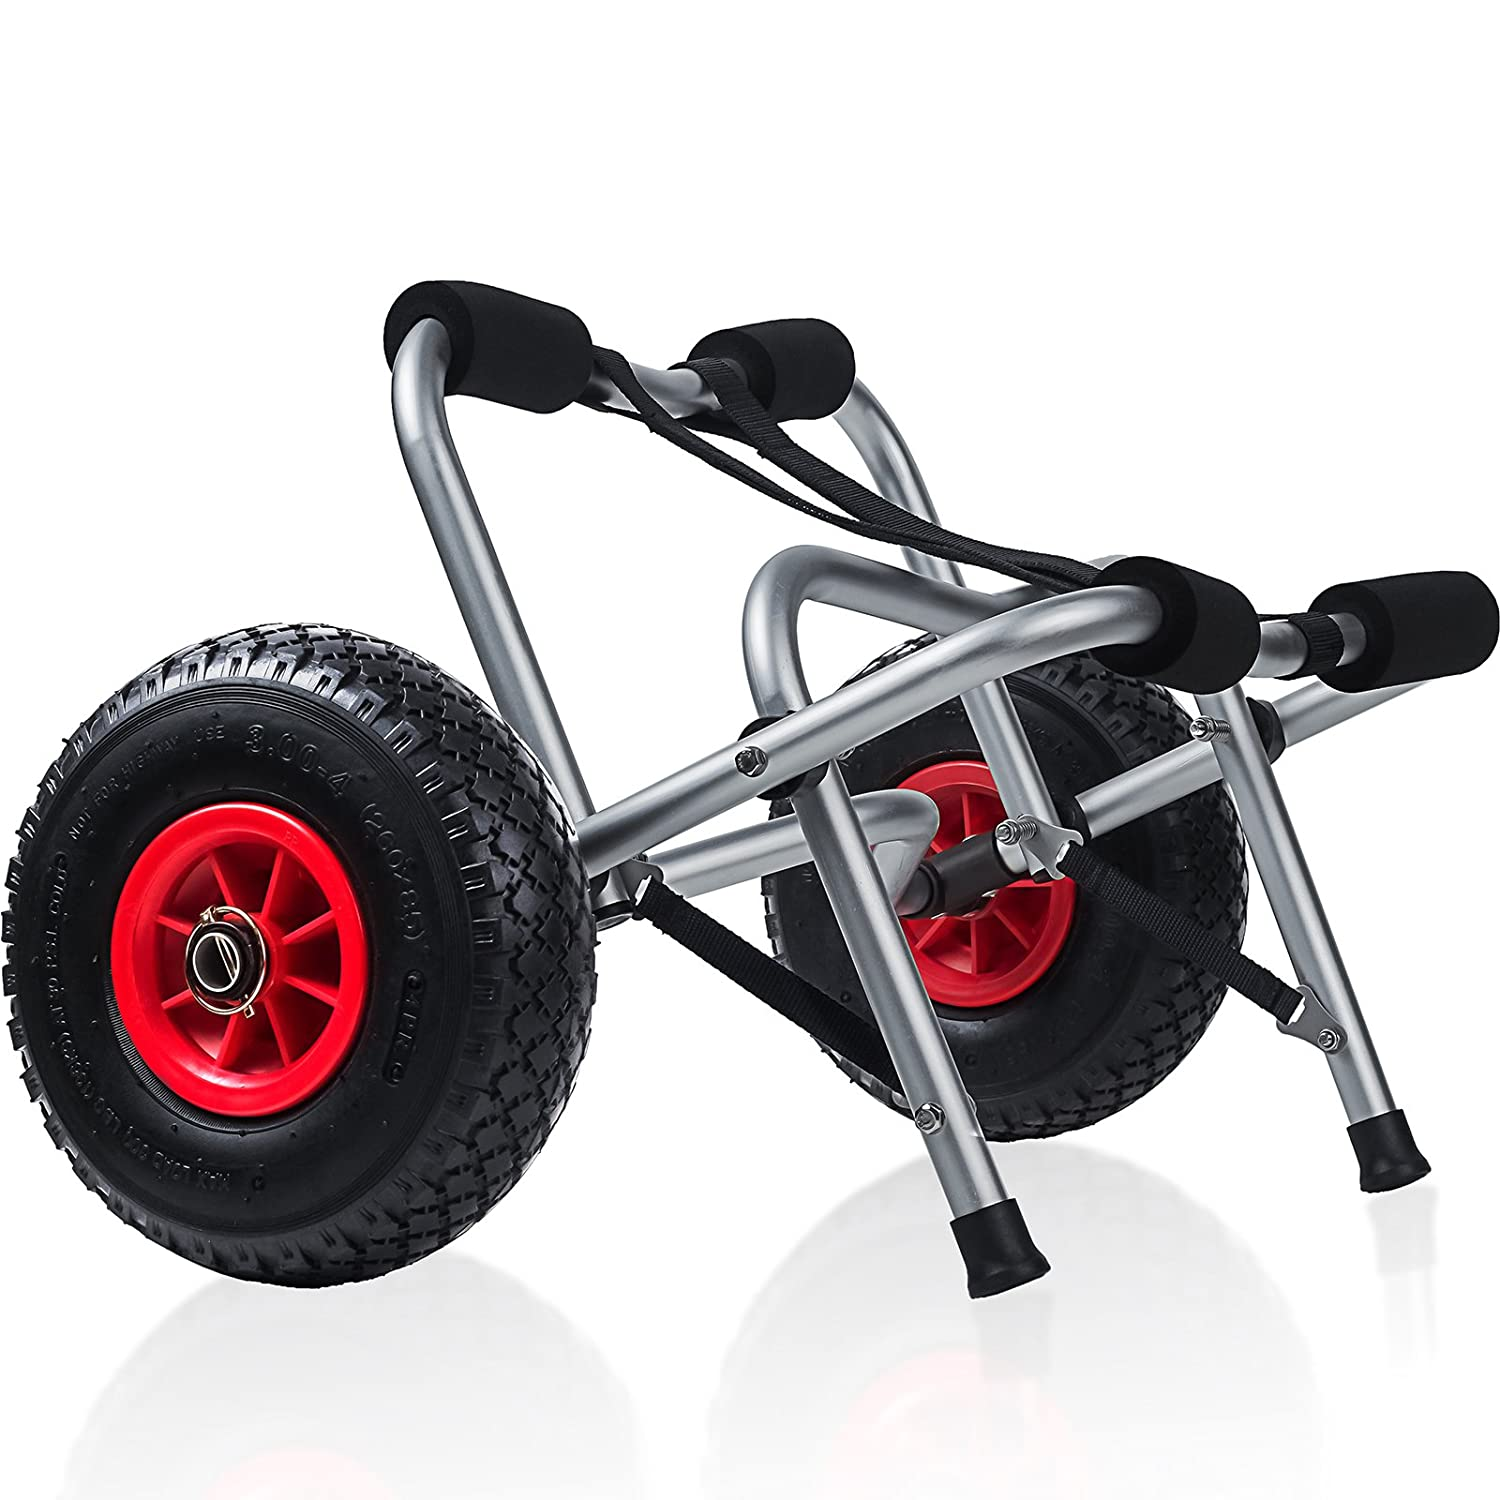 OxGord Kayak Dolly Boat Canoe Trolley Tote Cart Transport Carrier with Wheels